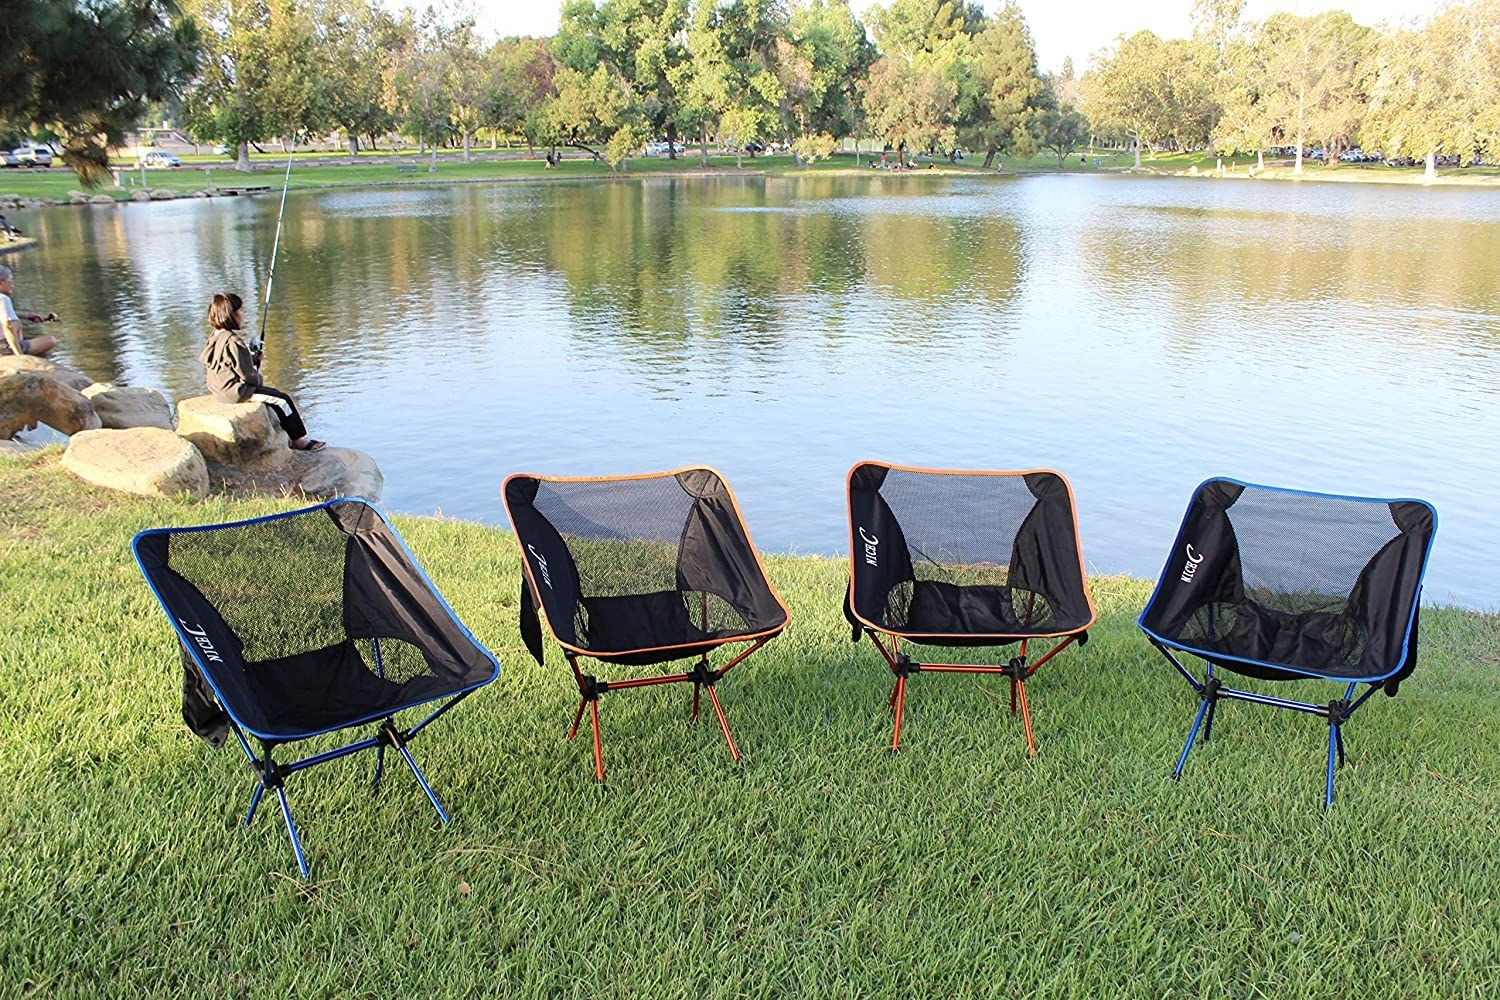 A row of four portable camping chairs by a lake